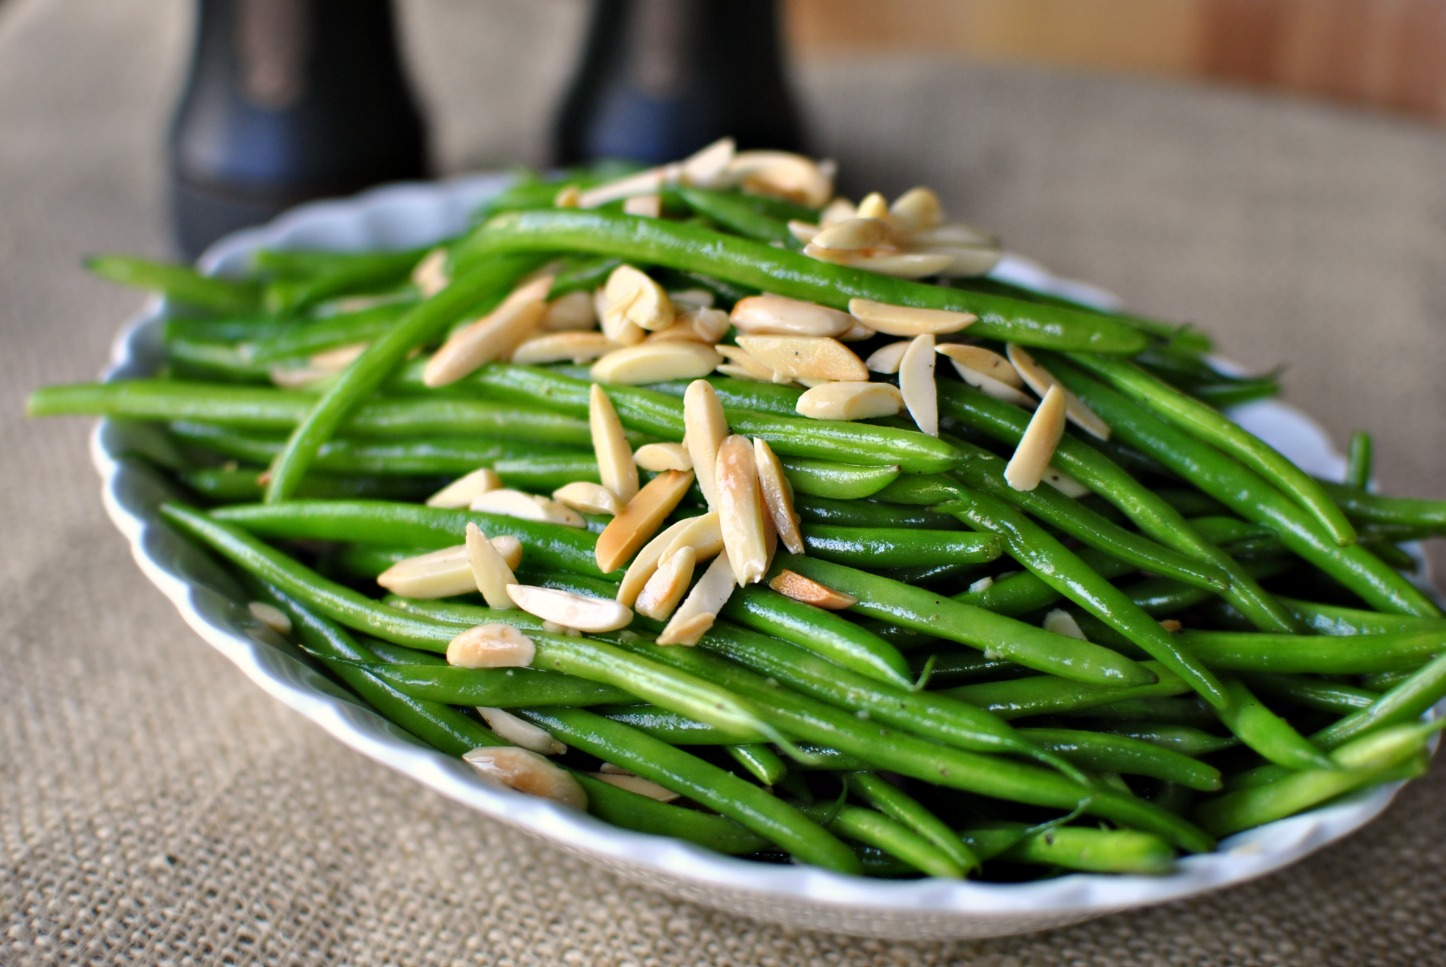 What you should know about green beans